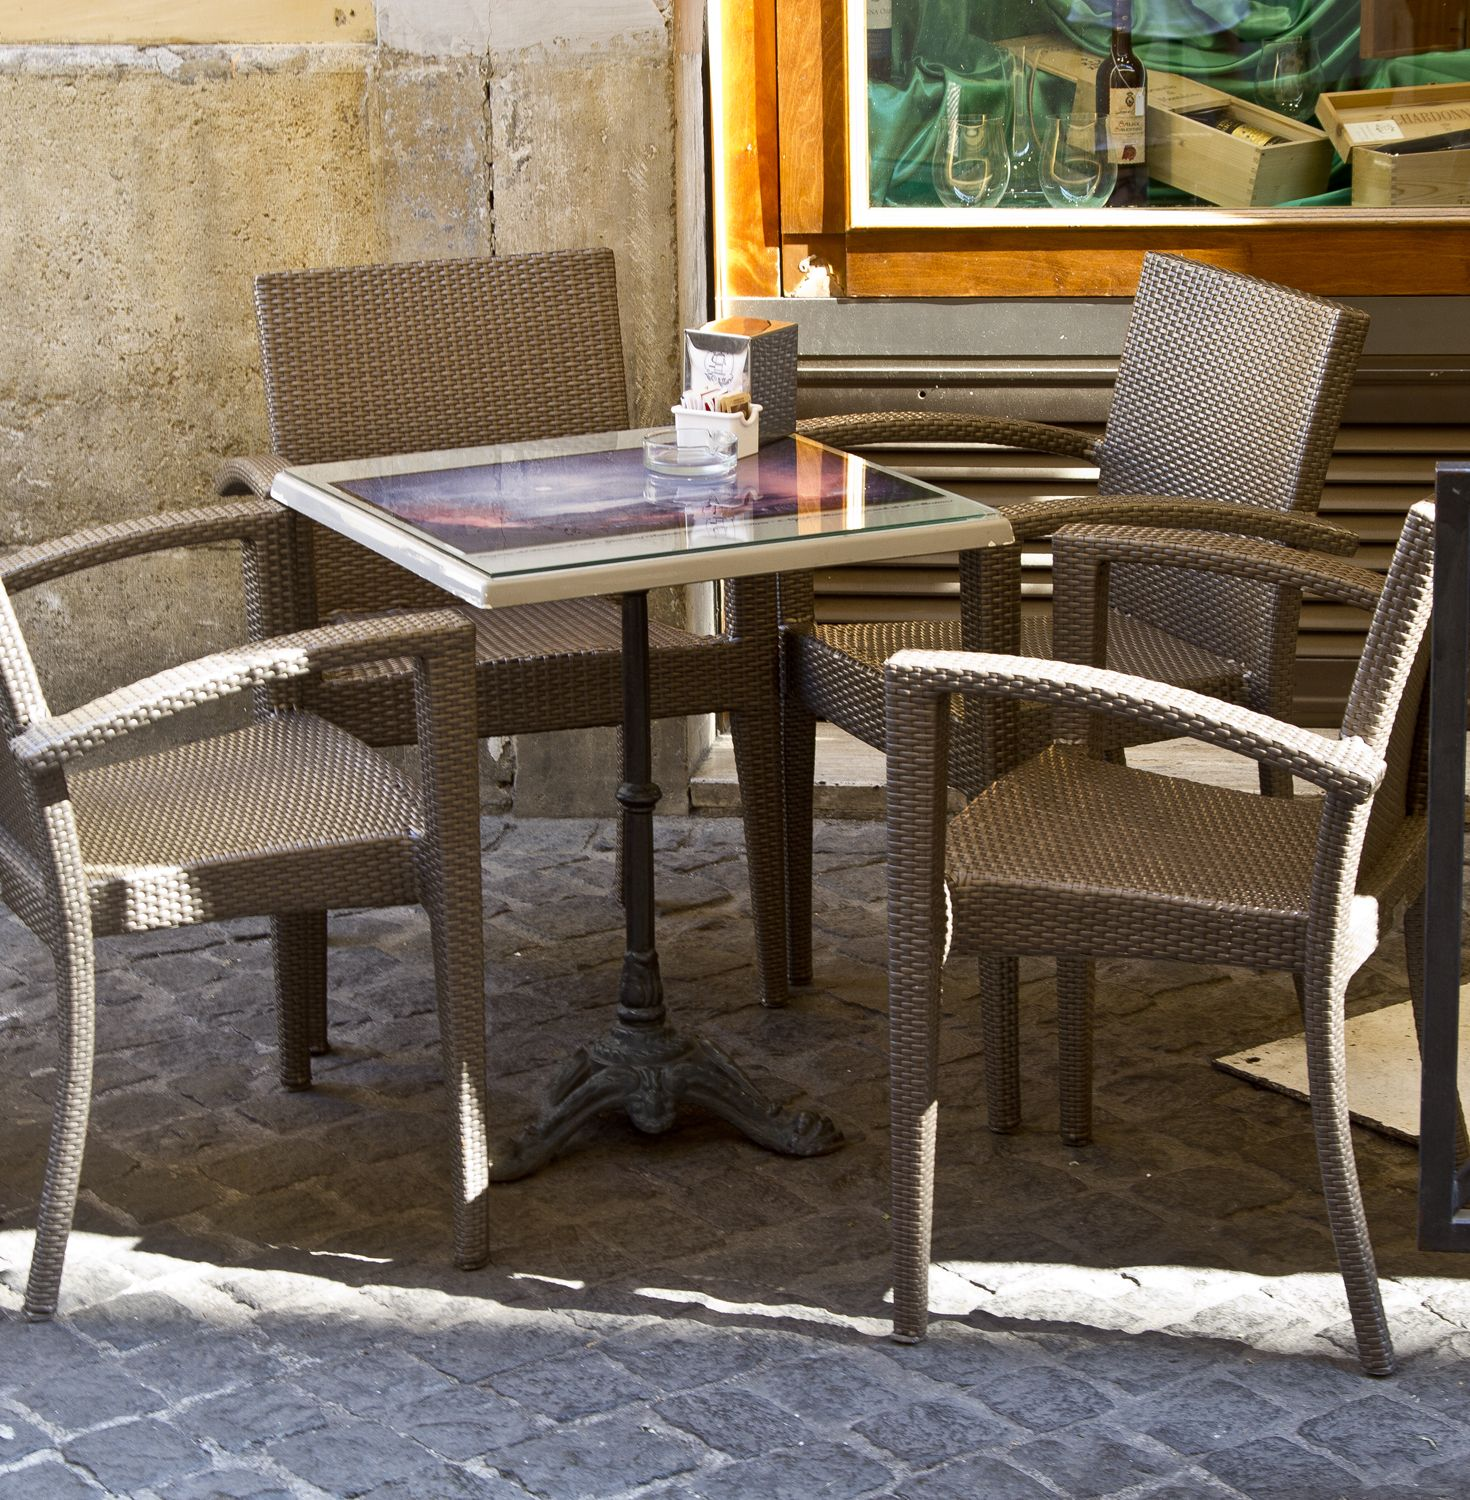 Outdoor Cafe -  Rome, Italy